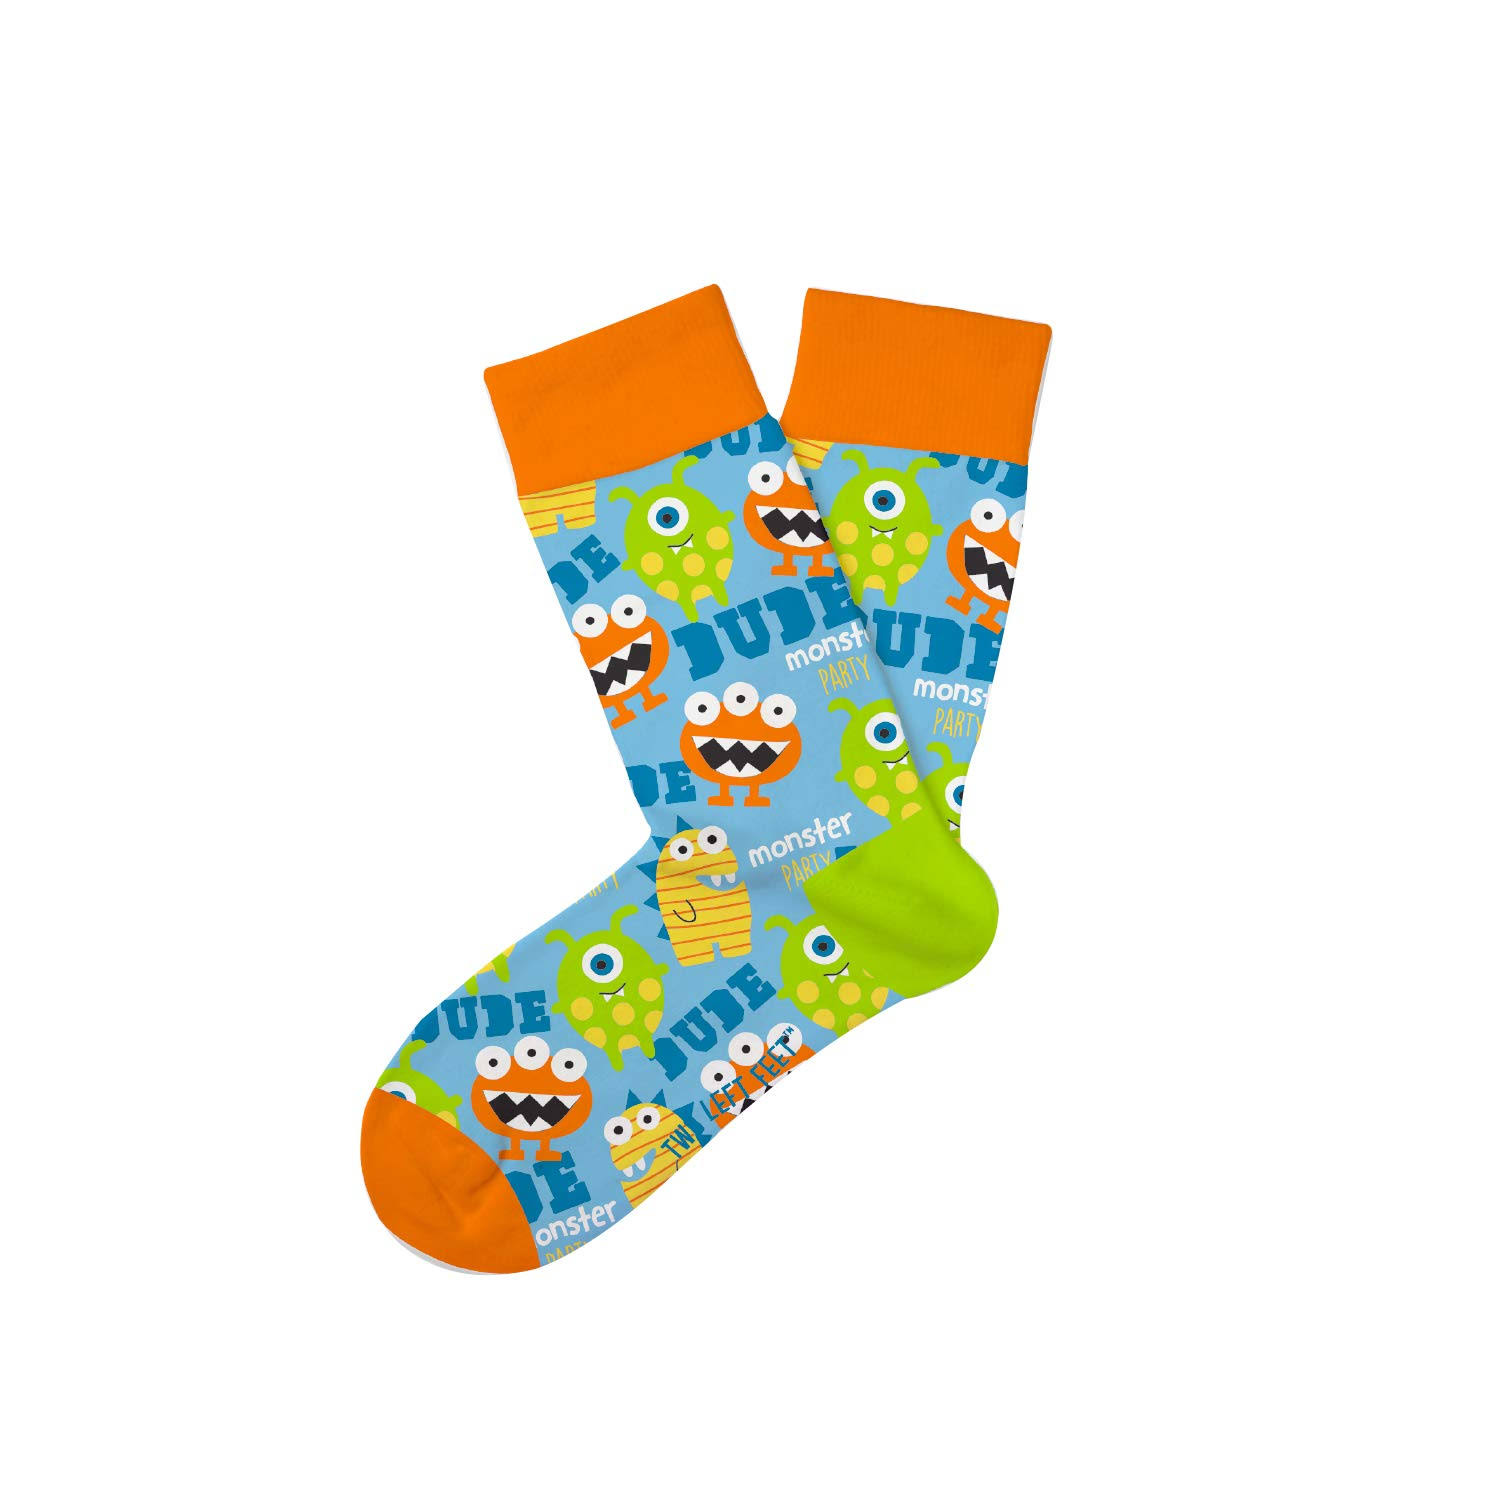 Two Left Feet Kids Novelty Crew Socks - Monster Medium Large